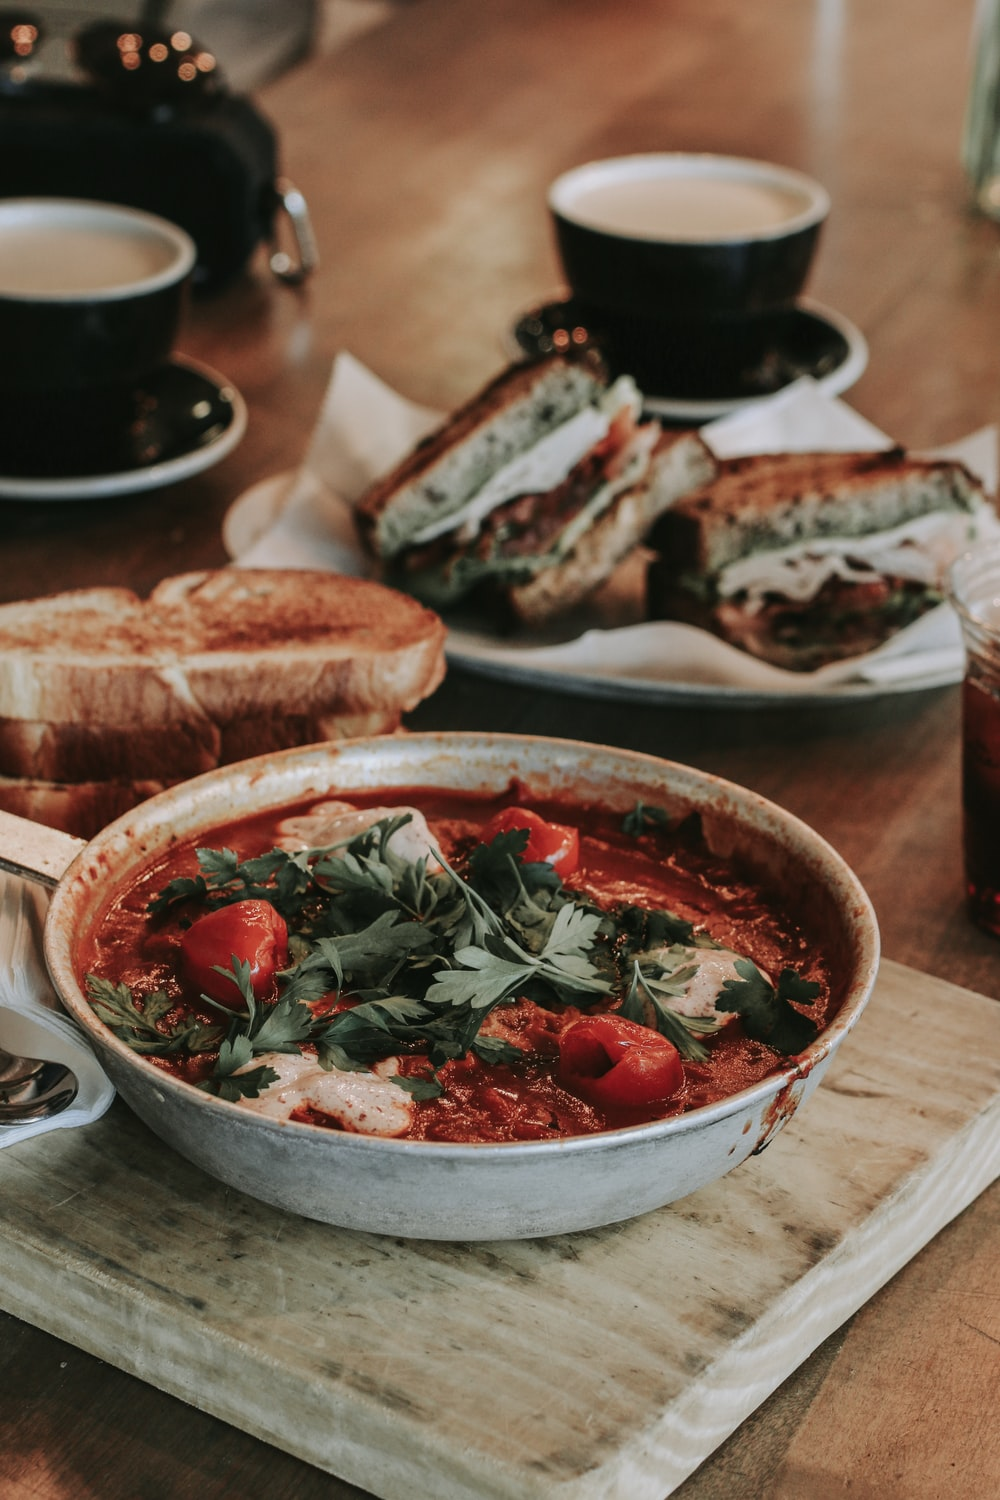 stewed food with parsley and tomatoes in bowl